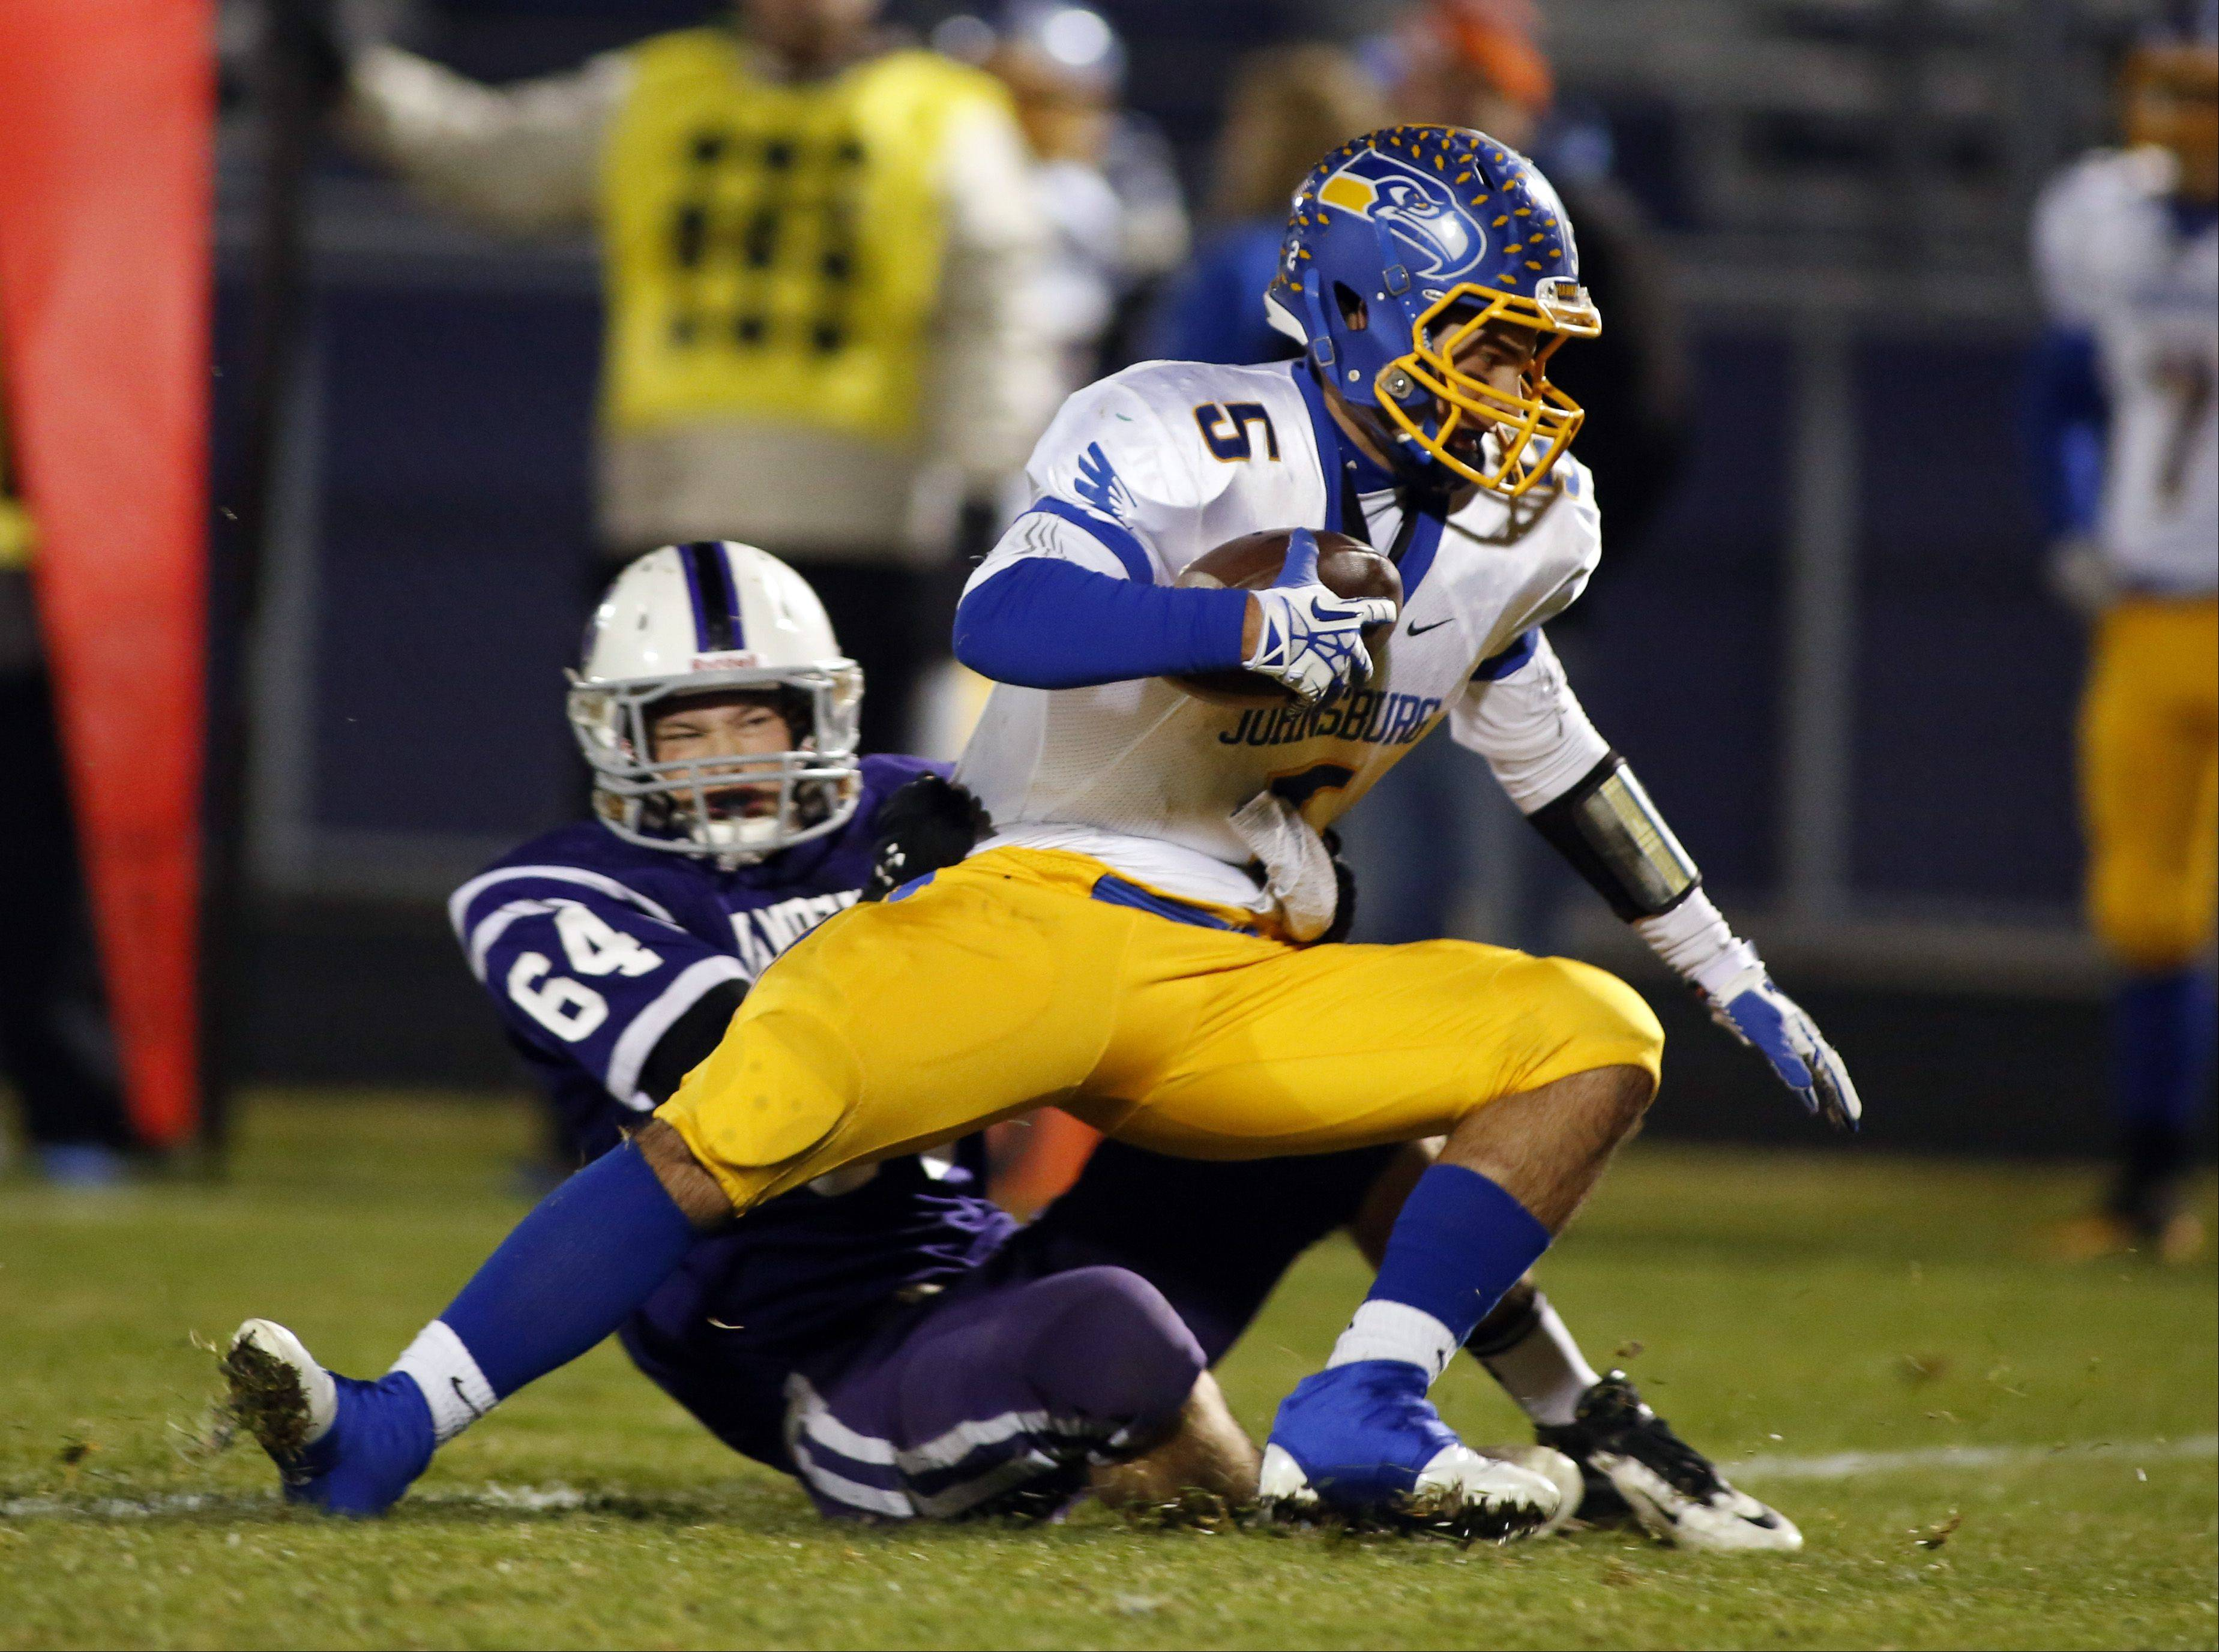 Hampshire's Stephen Kirkwood pulls down Johnsburg's Nick Brengman for a loss Friday night in Hampshire.